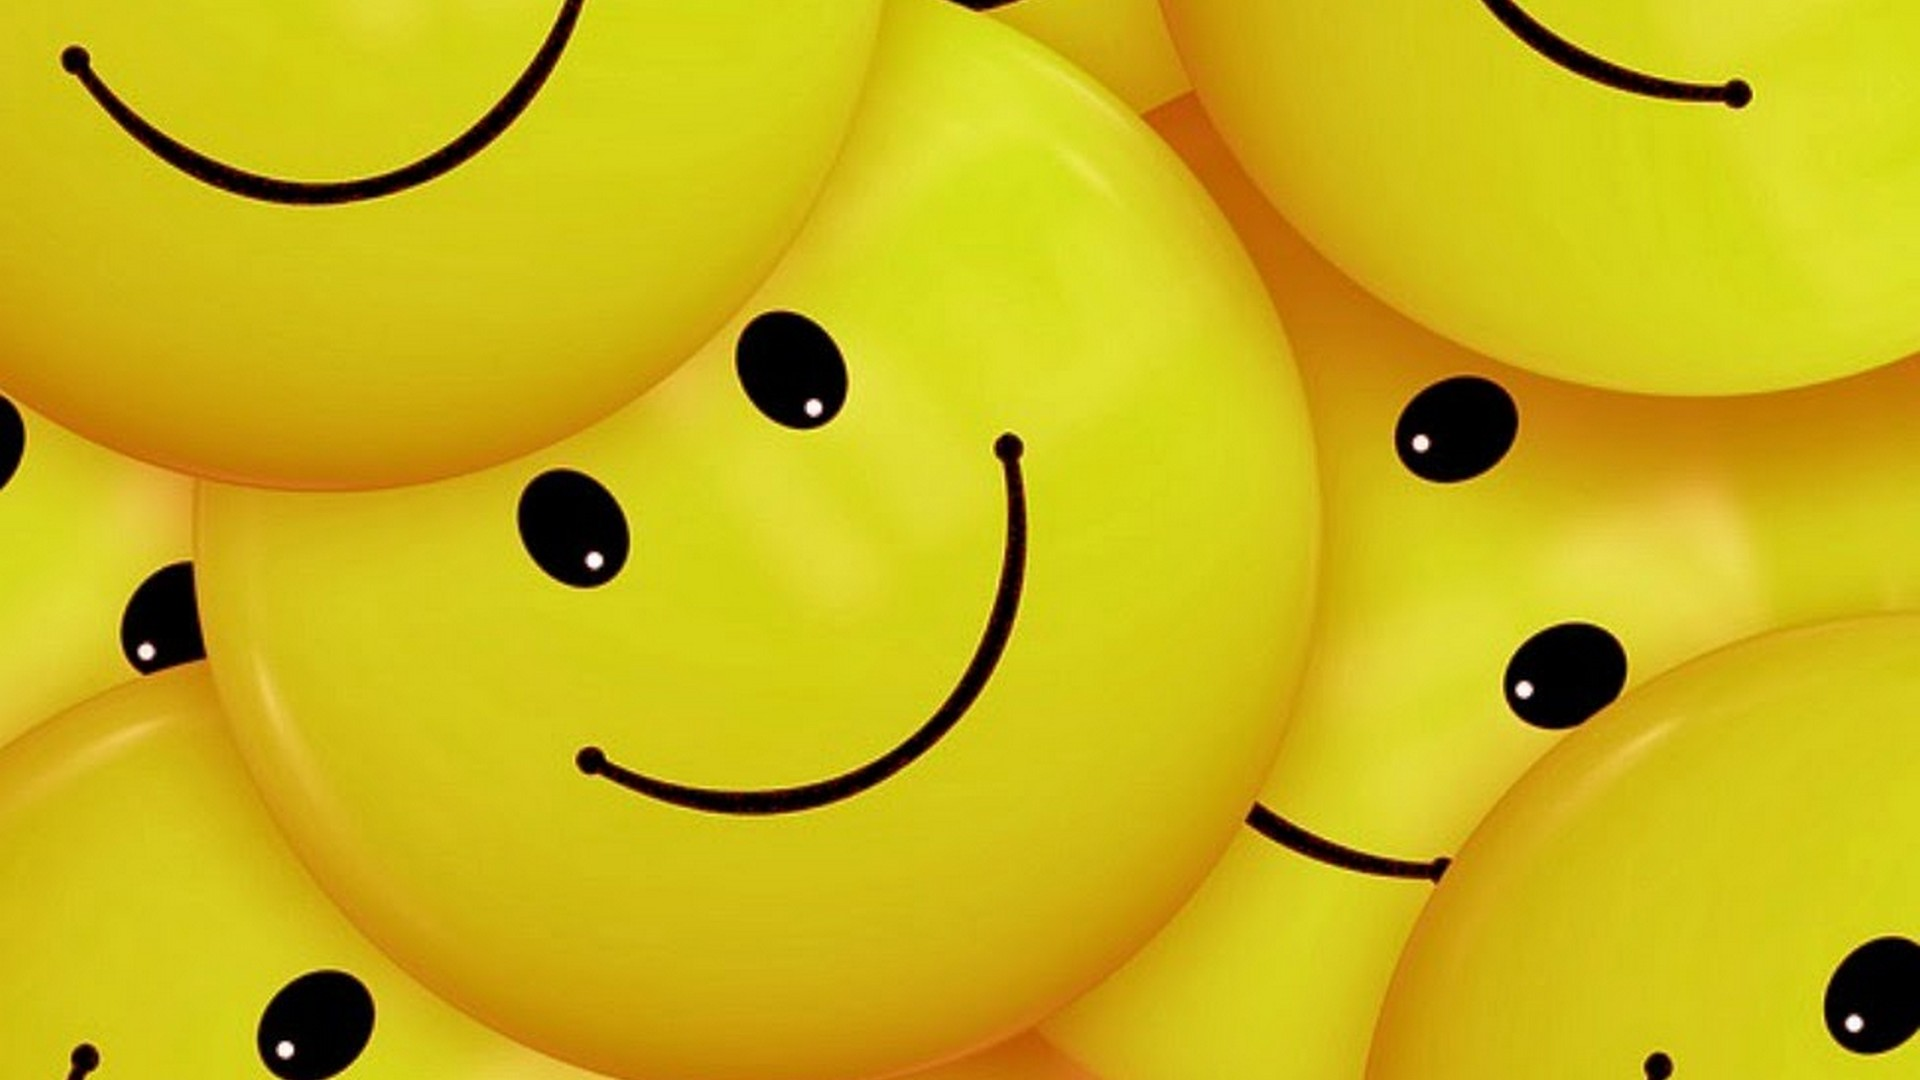 Computer Wallpapers Cute Yellow 2021 Cute Wallpapers 1920x1080